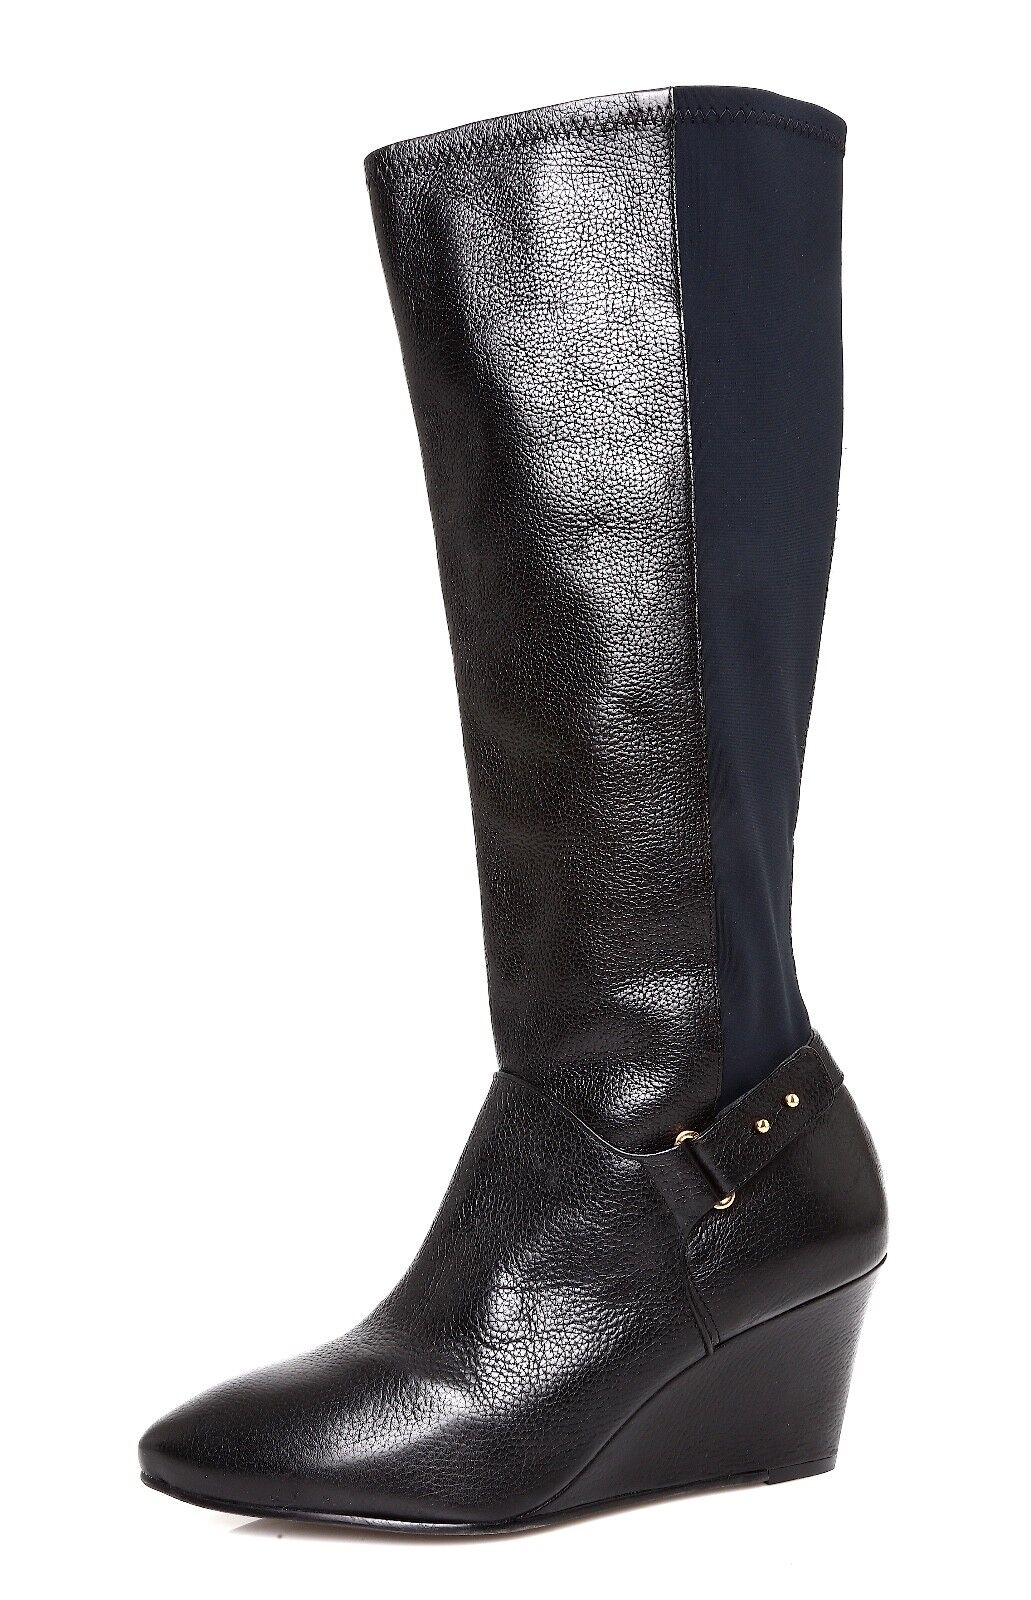 Steve Madden Jaden Women's Black Leather Boot Sz 9.5 M 4482 *